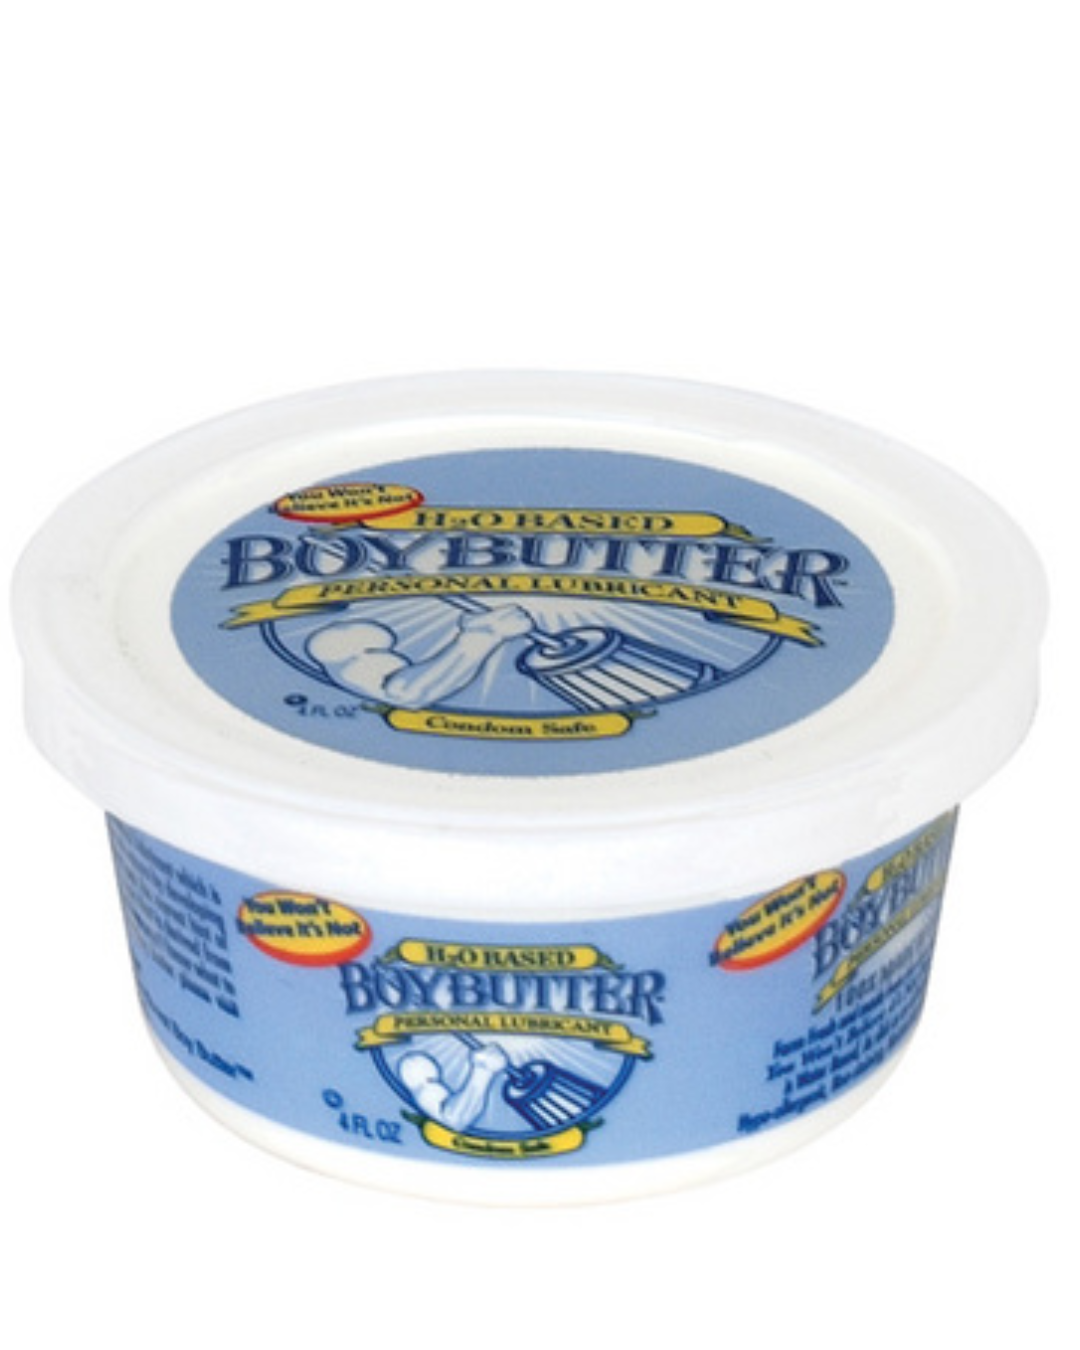 Boy Butter H2O water based cream lubricant  4 oz tub